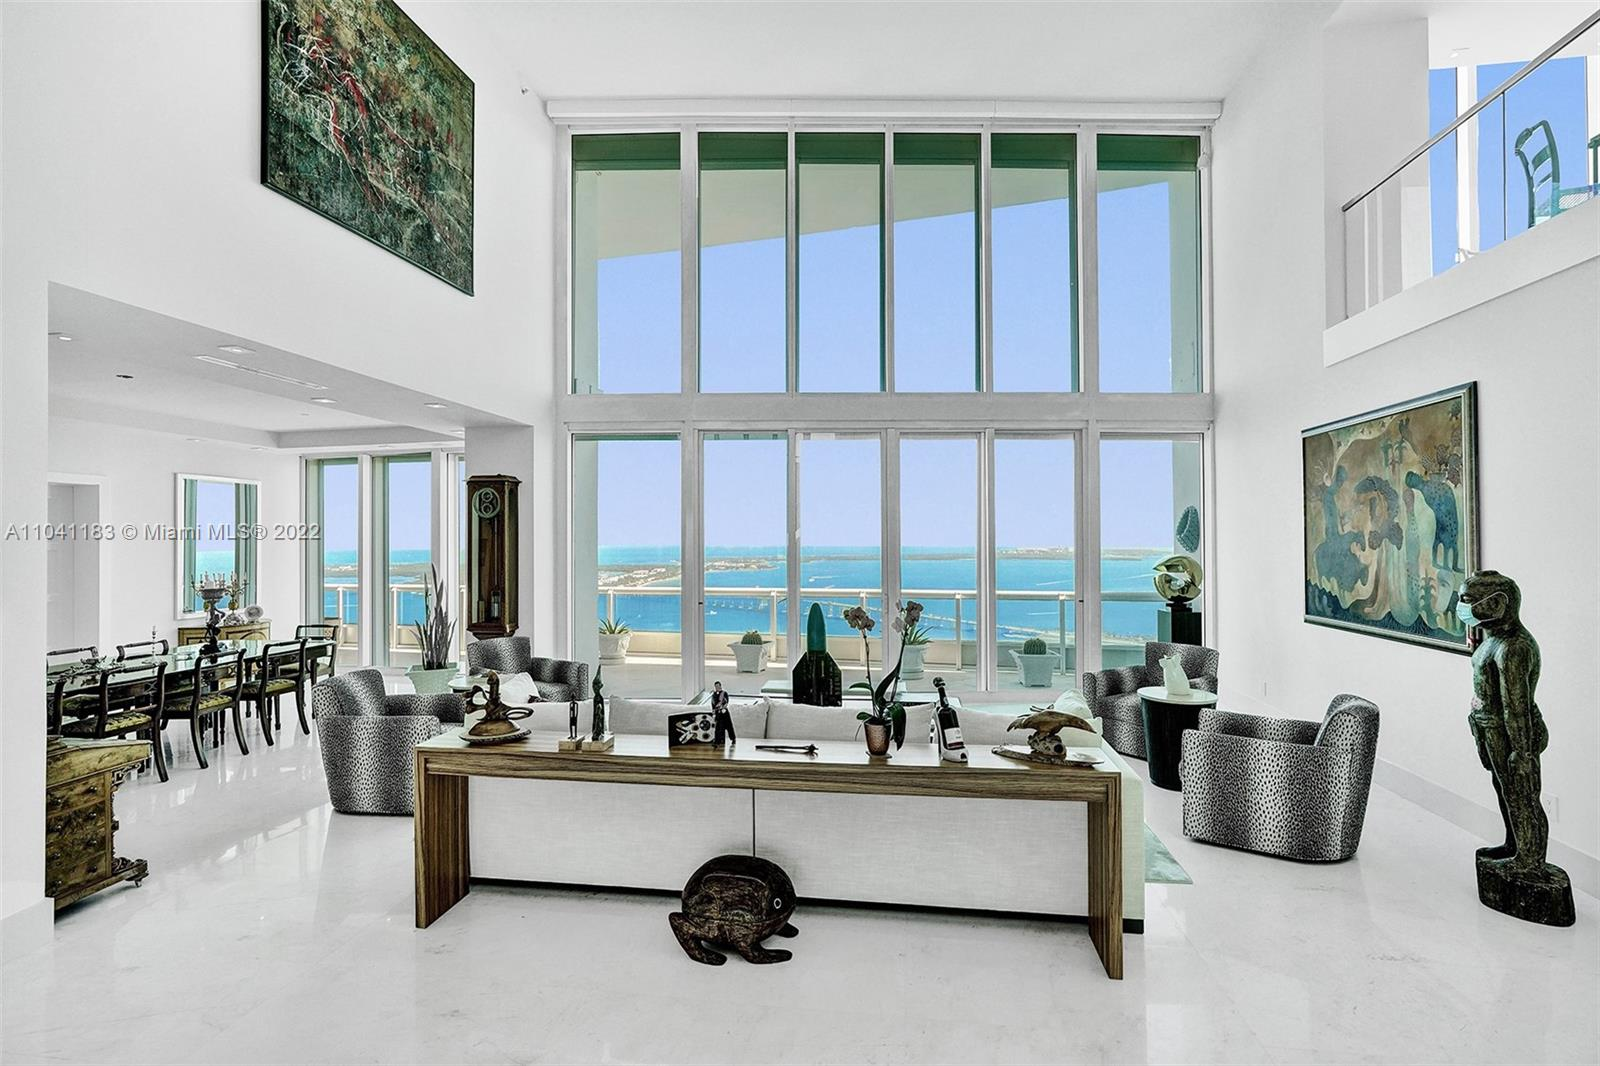 1643  Brickell Ave #PH4902 For Sale A11041183, FL